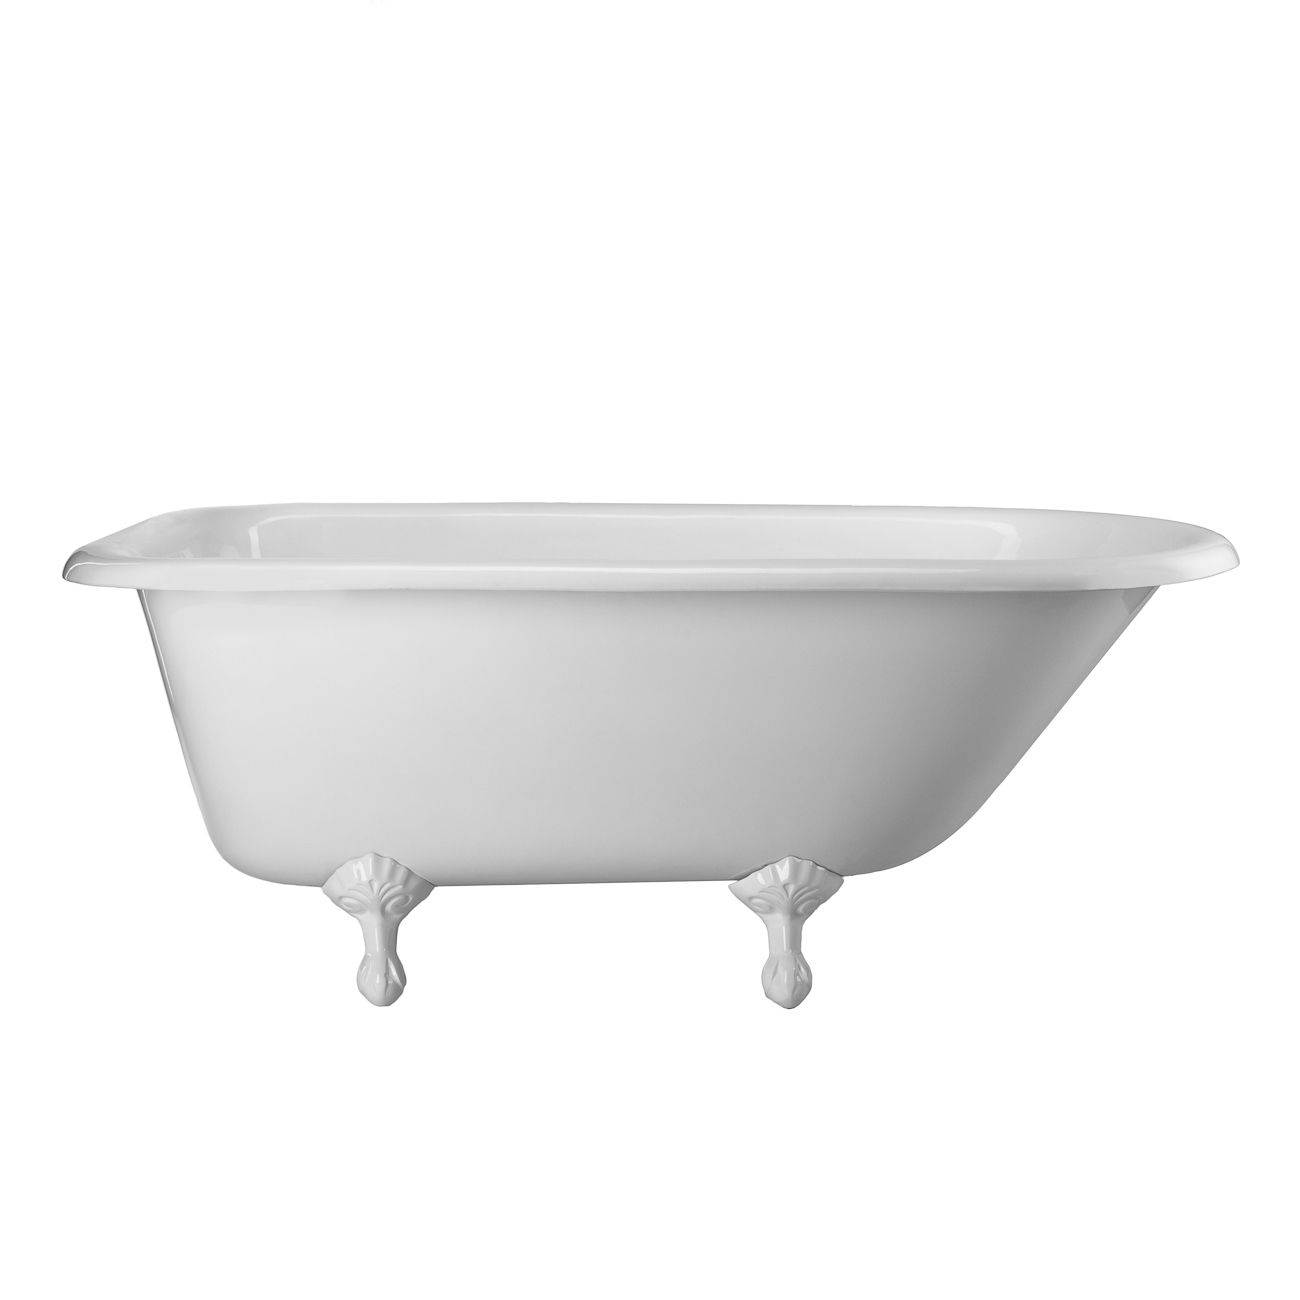 Heritage 72 inch cast iron classic clawfoot tub - no faucet drillings